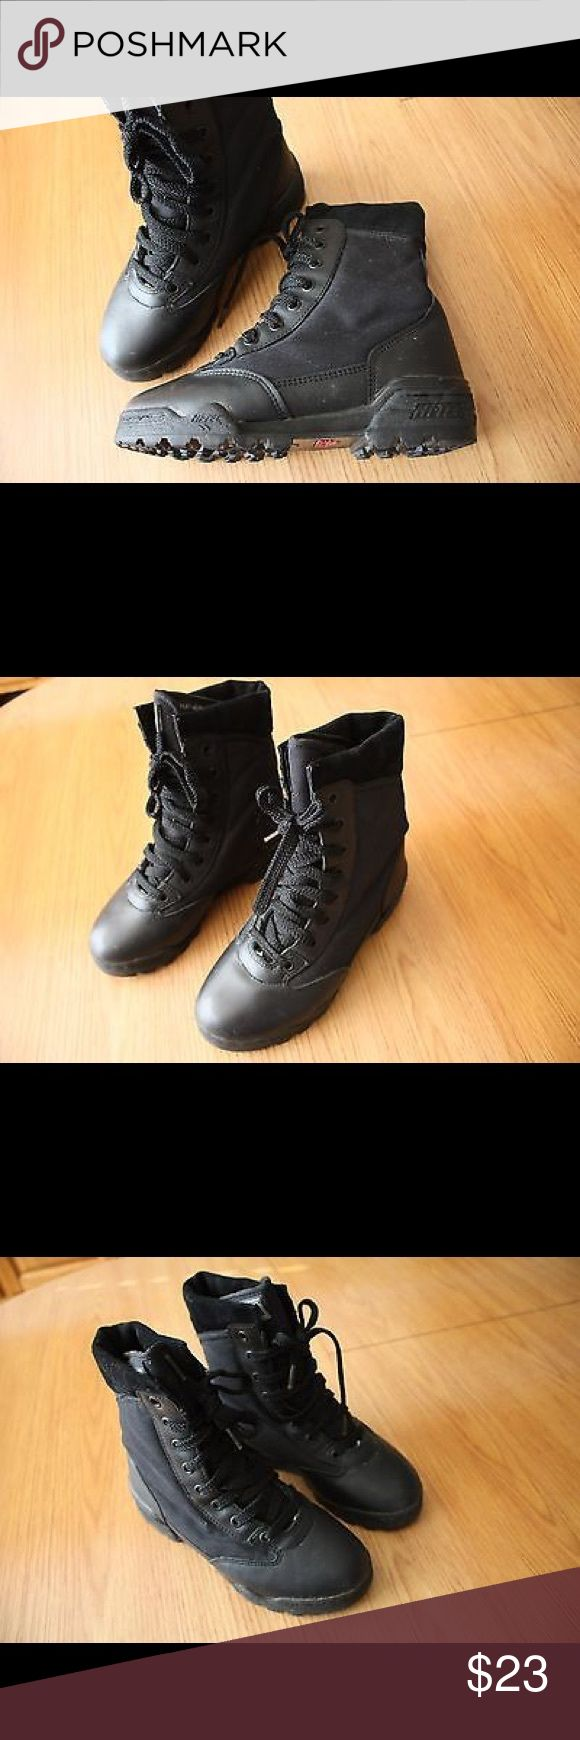 Magnum Hi-tec Tactical Combat Boots Size 7 USA Pre-Owned Magnum Hi-tec Women Tactical Combat Boots Size 7 USA 38 EUR Black 8 inch, Sn: LADY MAGNUM, Boots are in great condition, see photos for details. Magnum Shoes Combat & Moto Boots